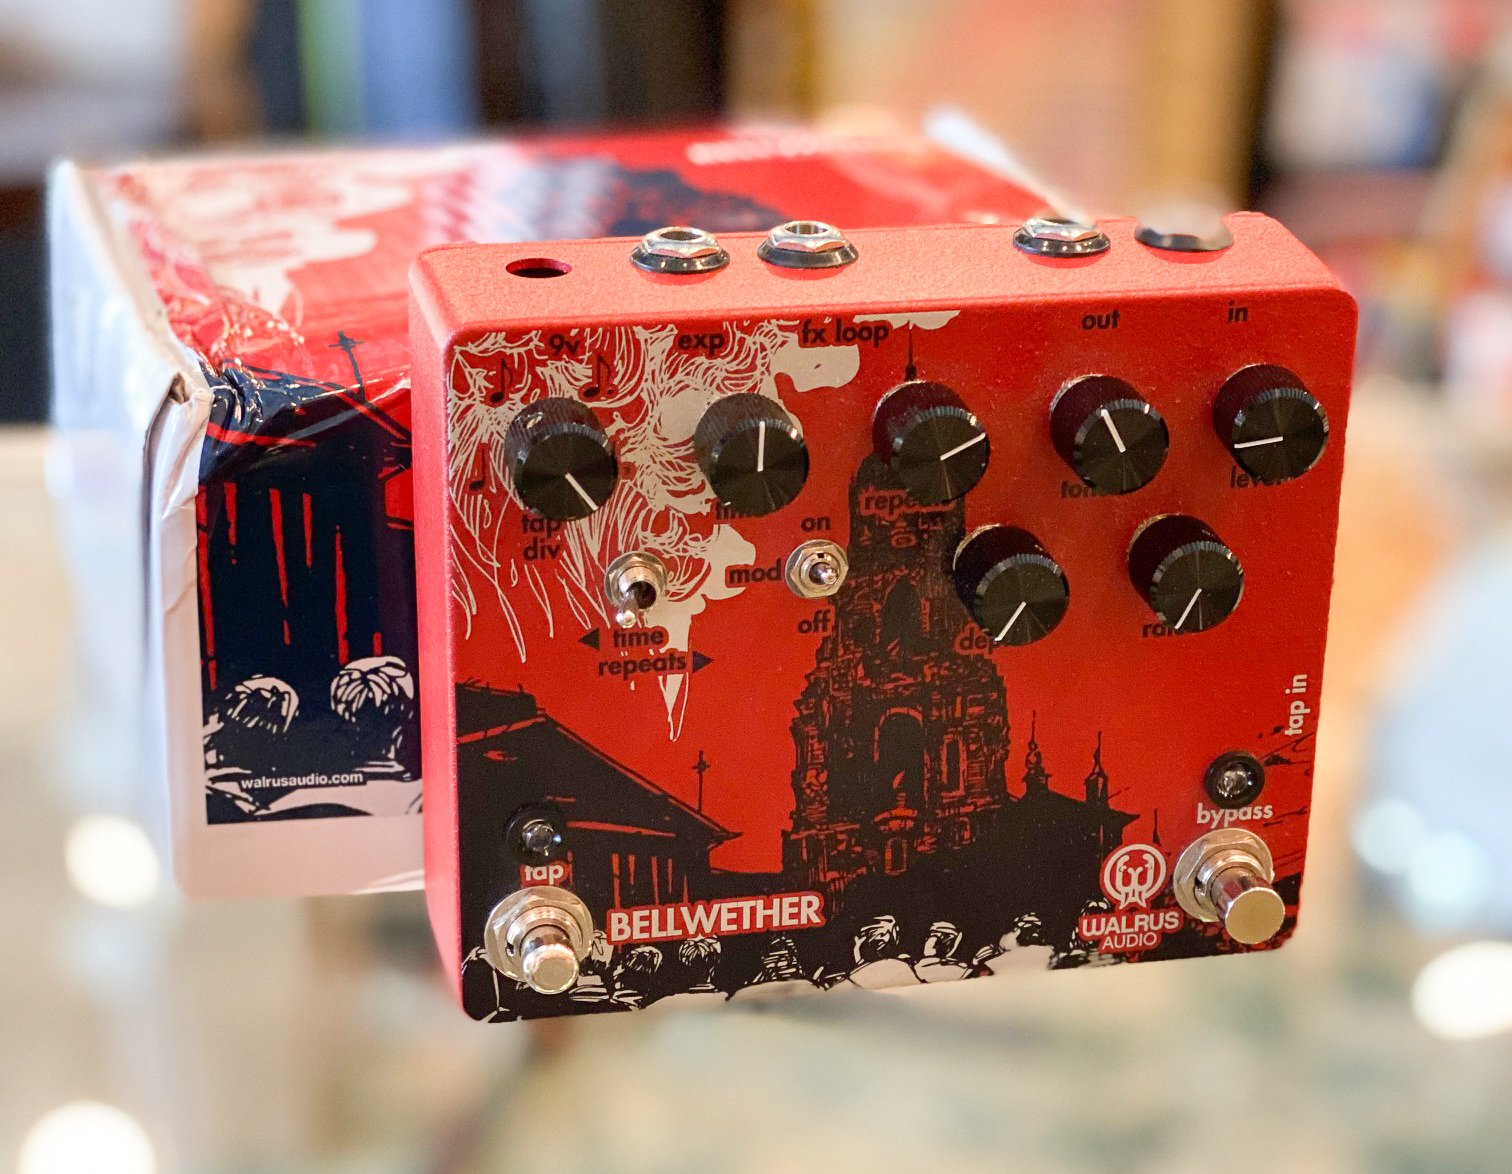 Walrus Audio Bellwether delay pedal